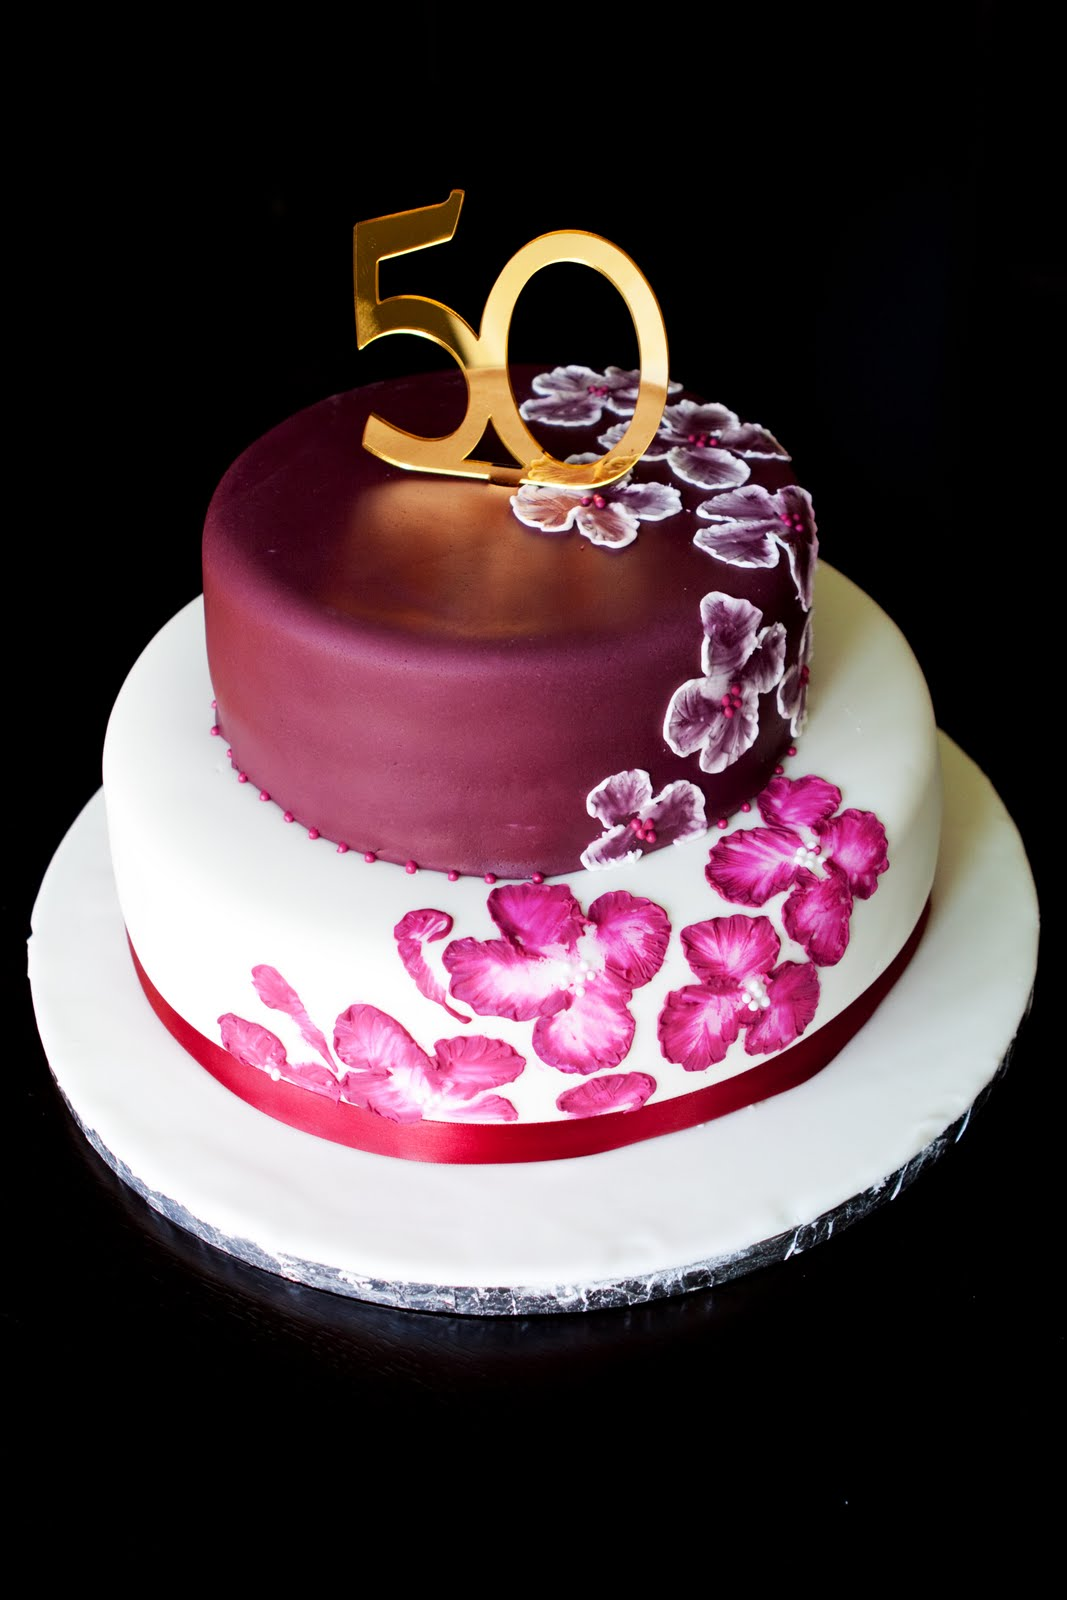 50th birthday cake with picture on it ; Elegant-50th-Birthday-Cake-Ideas